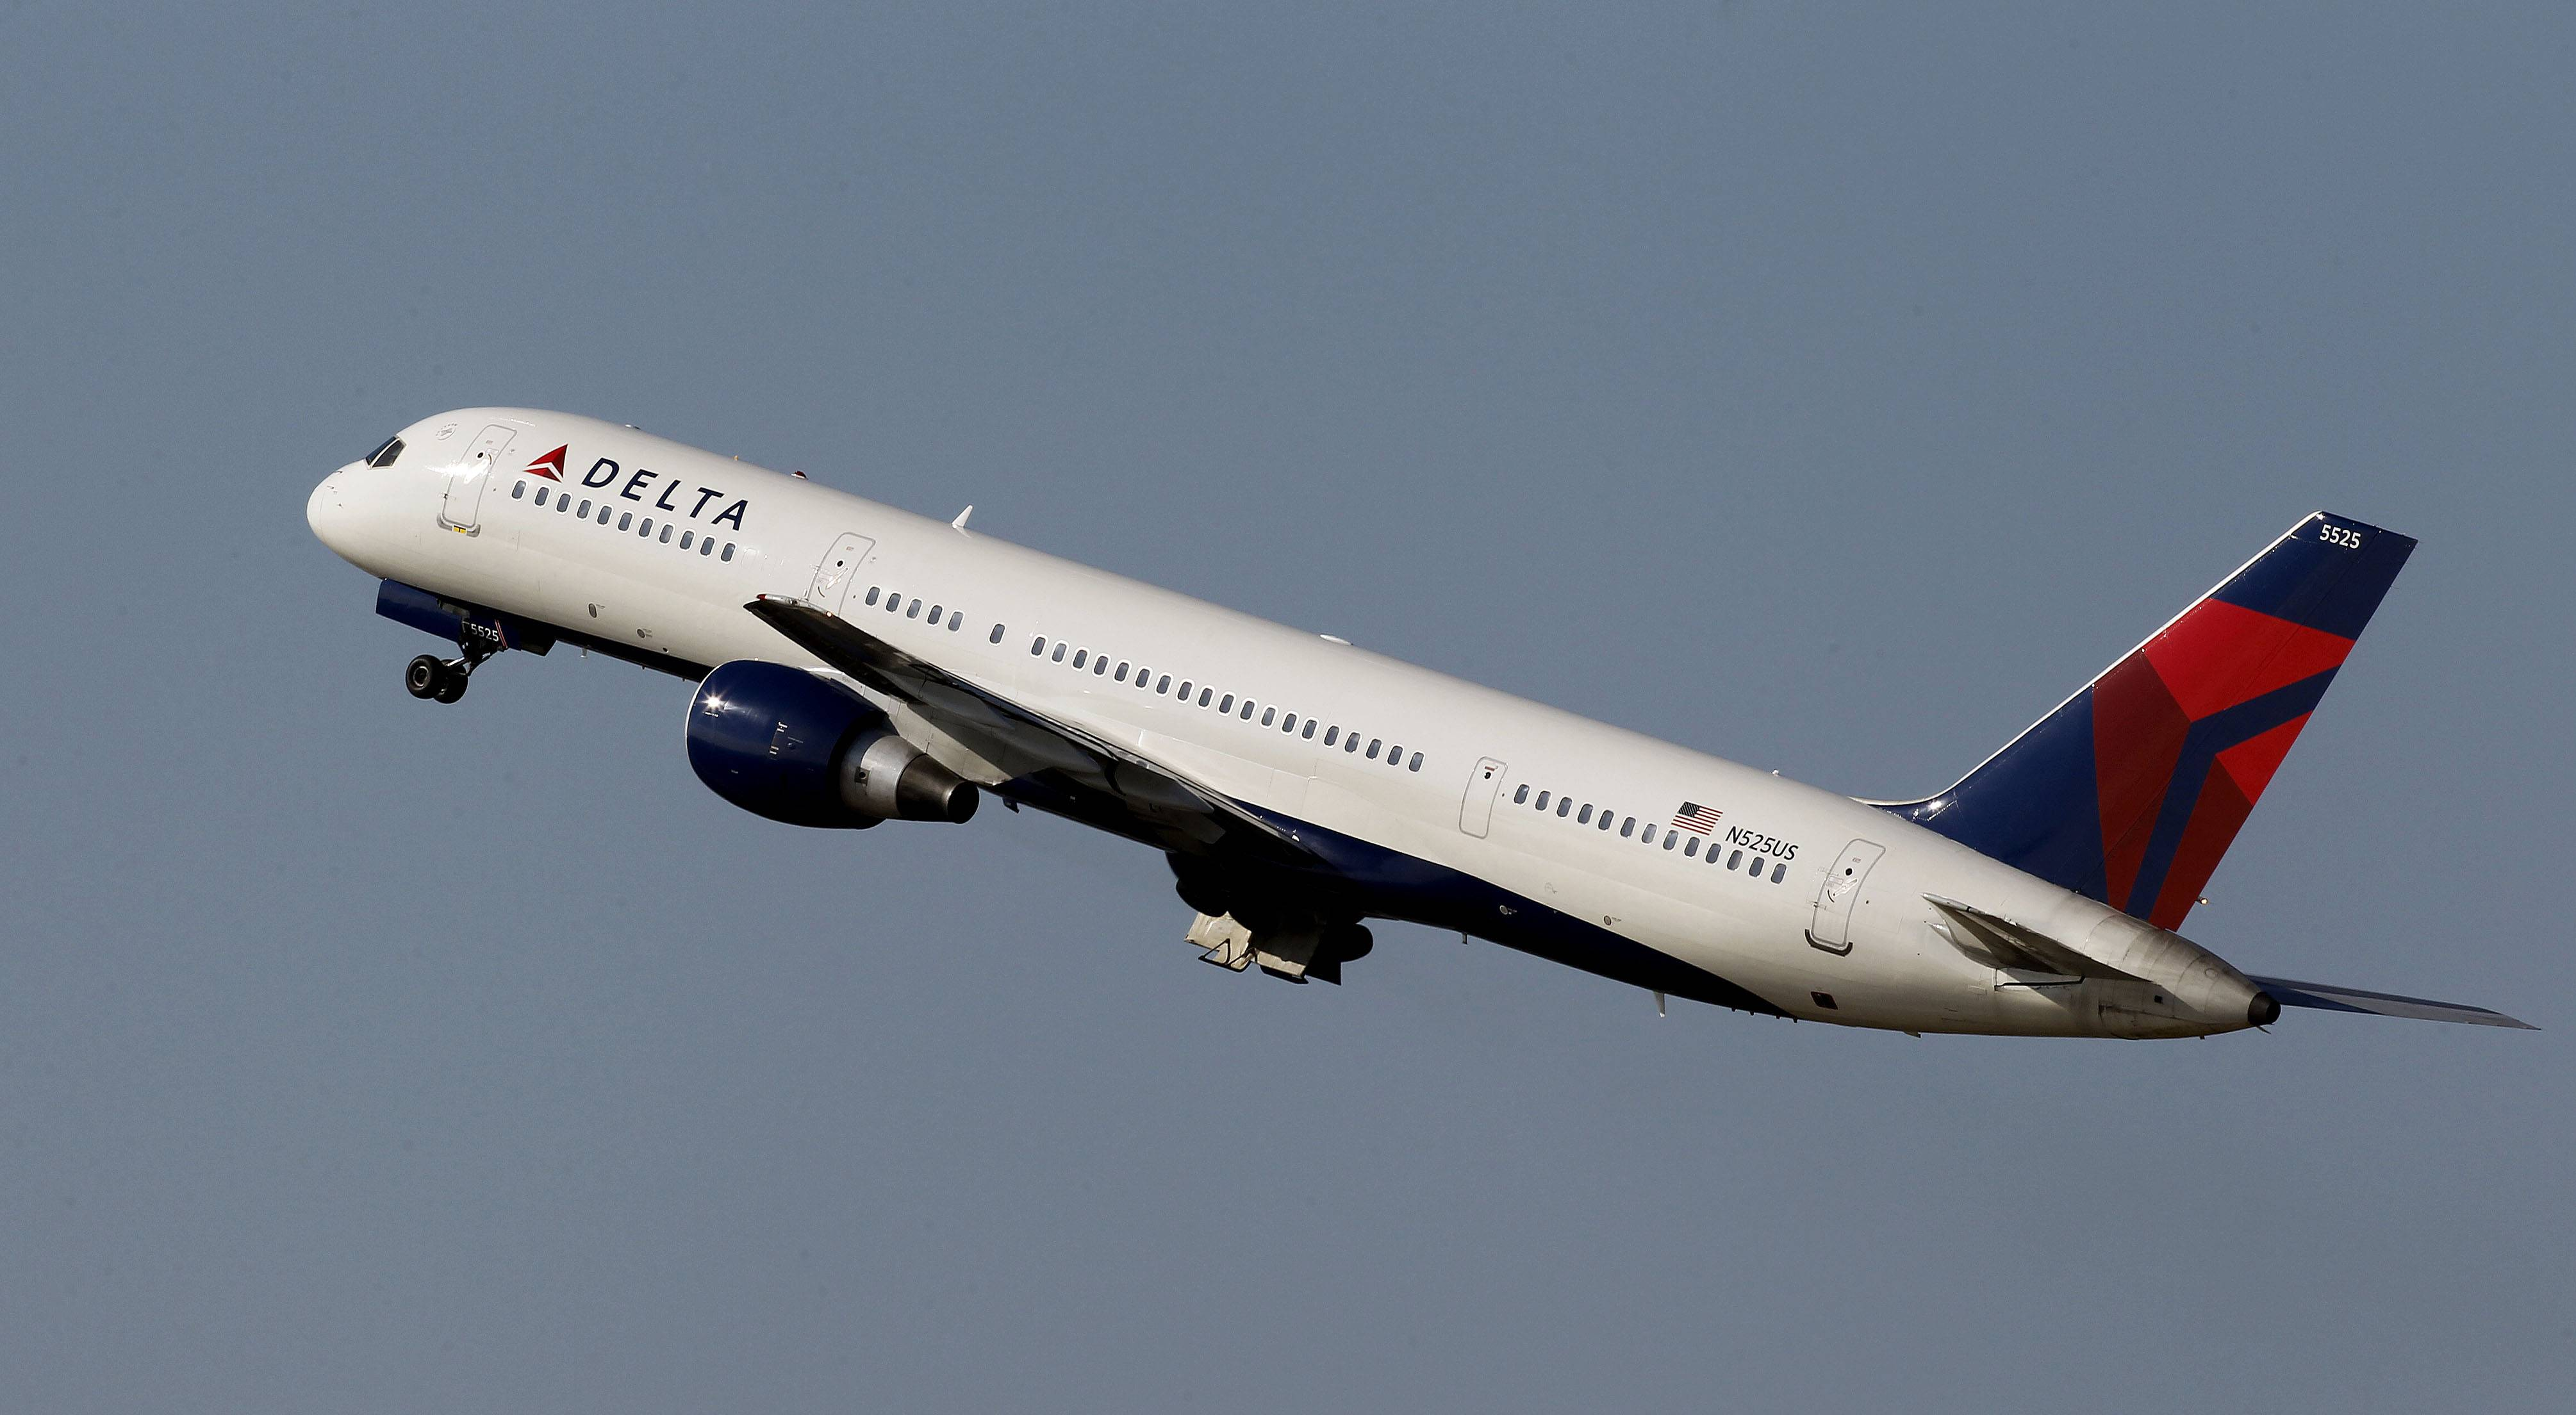 Delta Air Lines is making fundamental changes to its frequent flier program and will reward those who buy its priciest tickets, as opposed to those who fly the most miles.